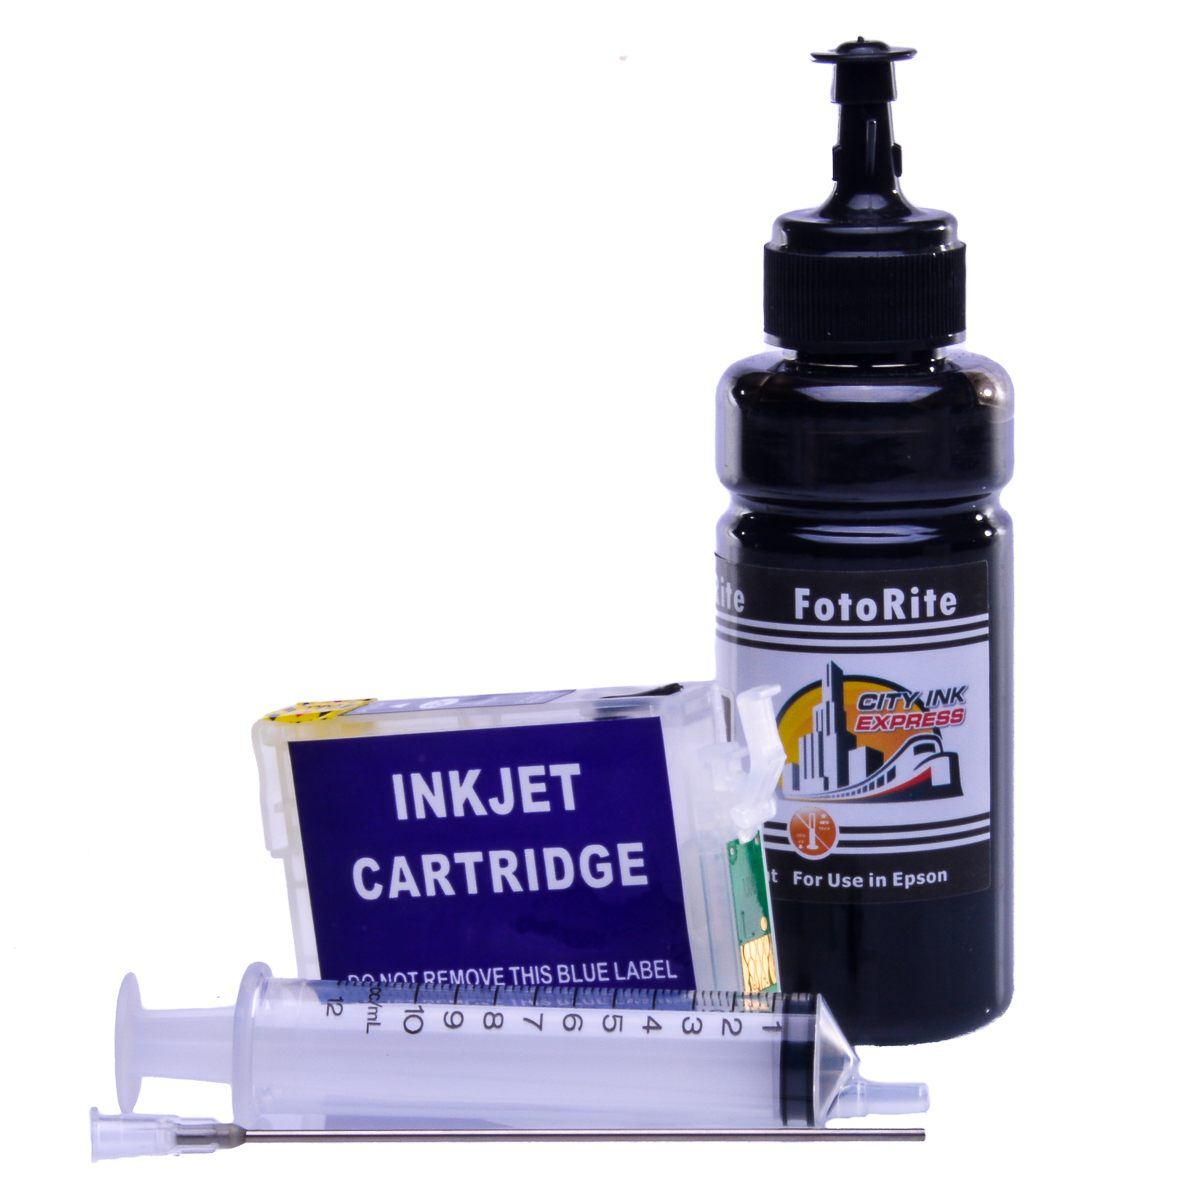 Refillable pigment Cheap printer cartridges for Epson Stylus SX110 C13T07114010 T0711 Black